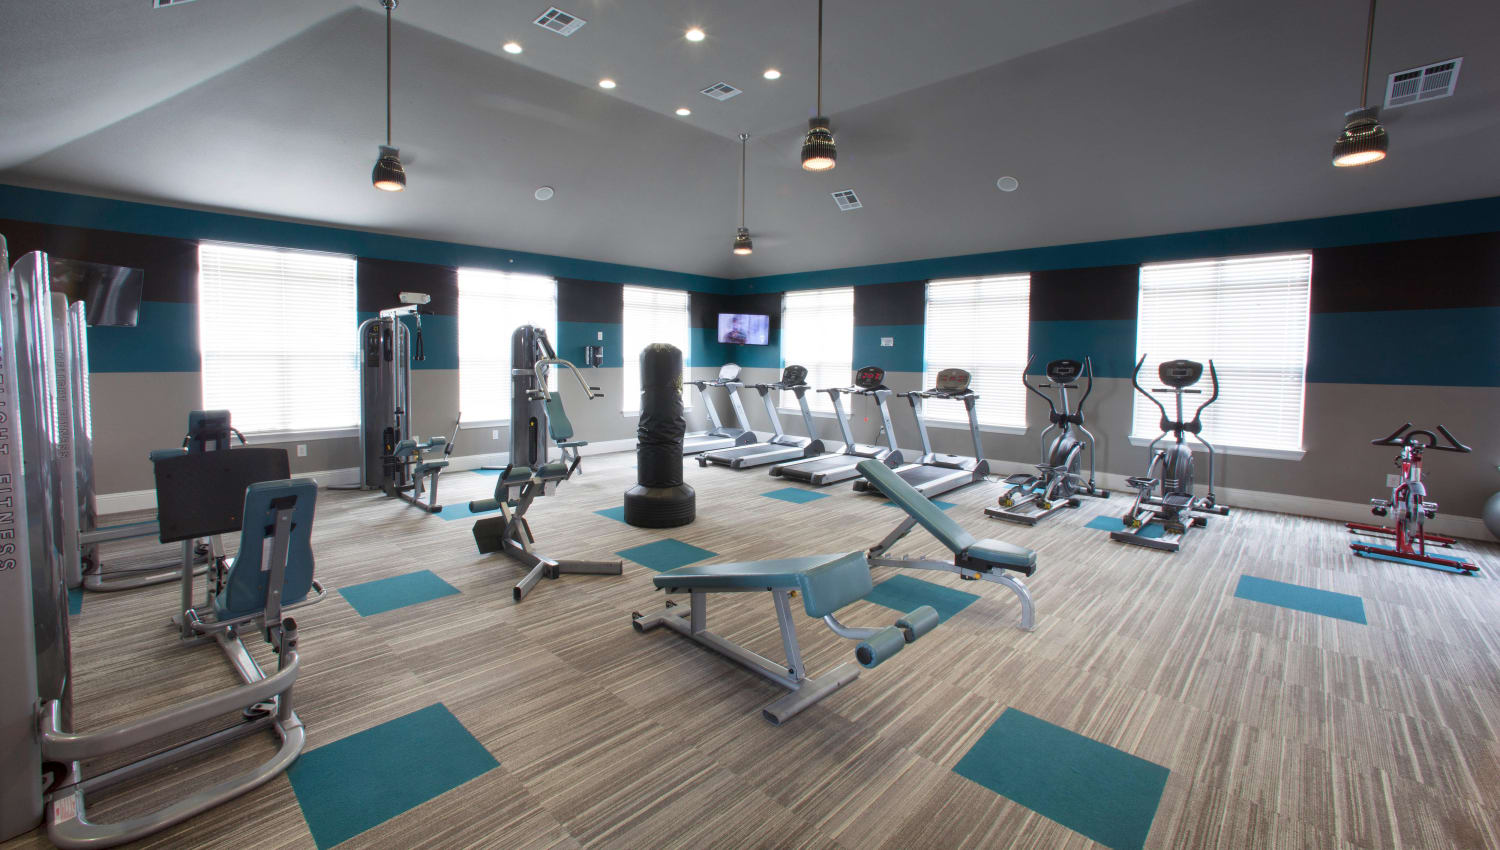 Fully equipped fitness center at Olympus Katy Ranch in Katy, Texas